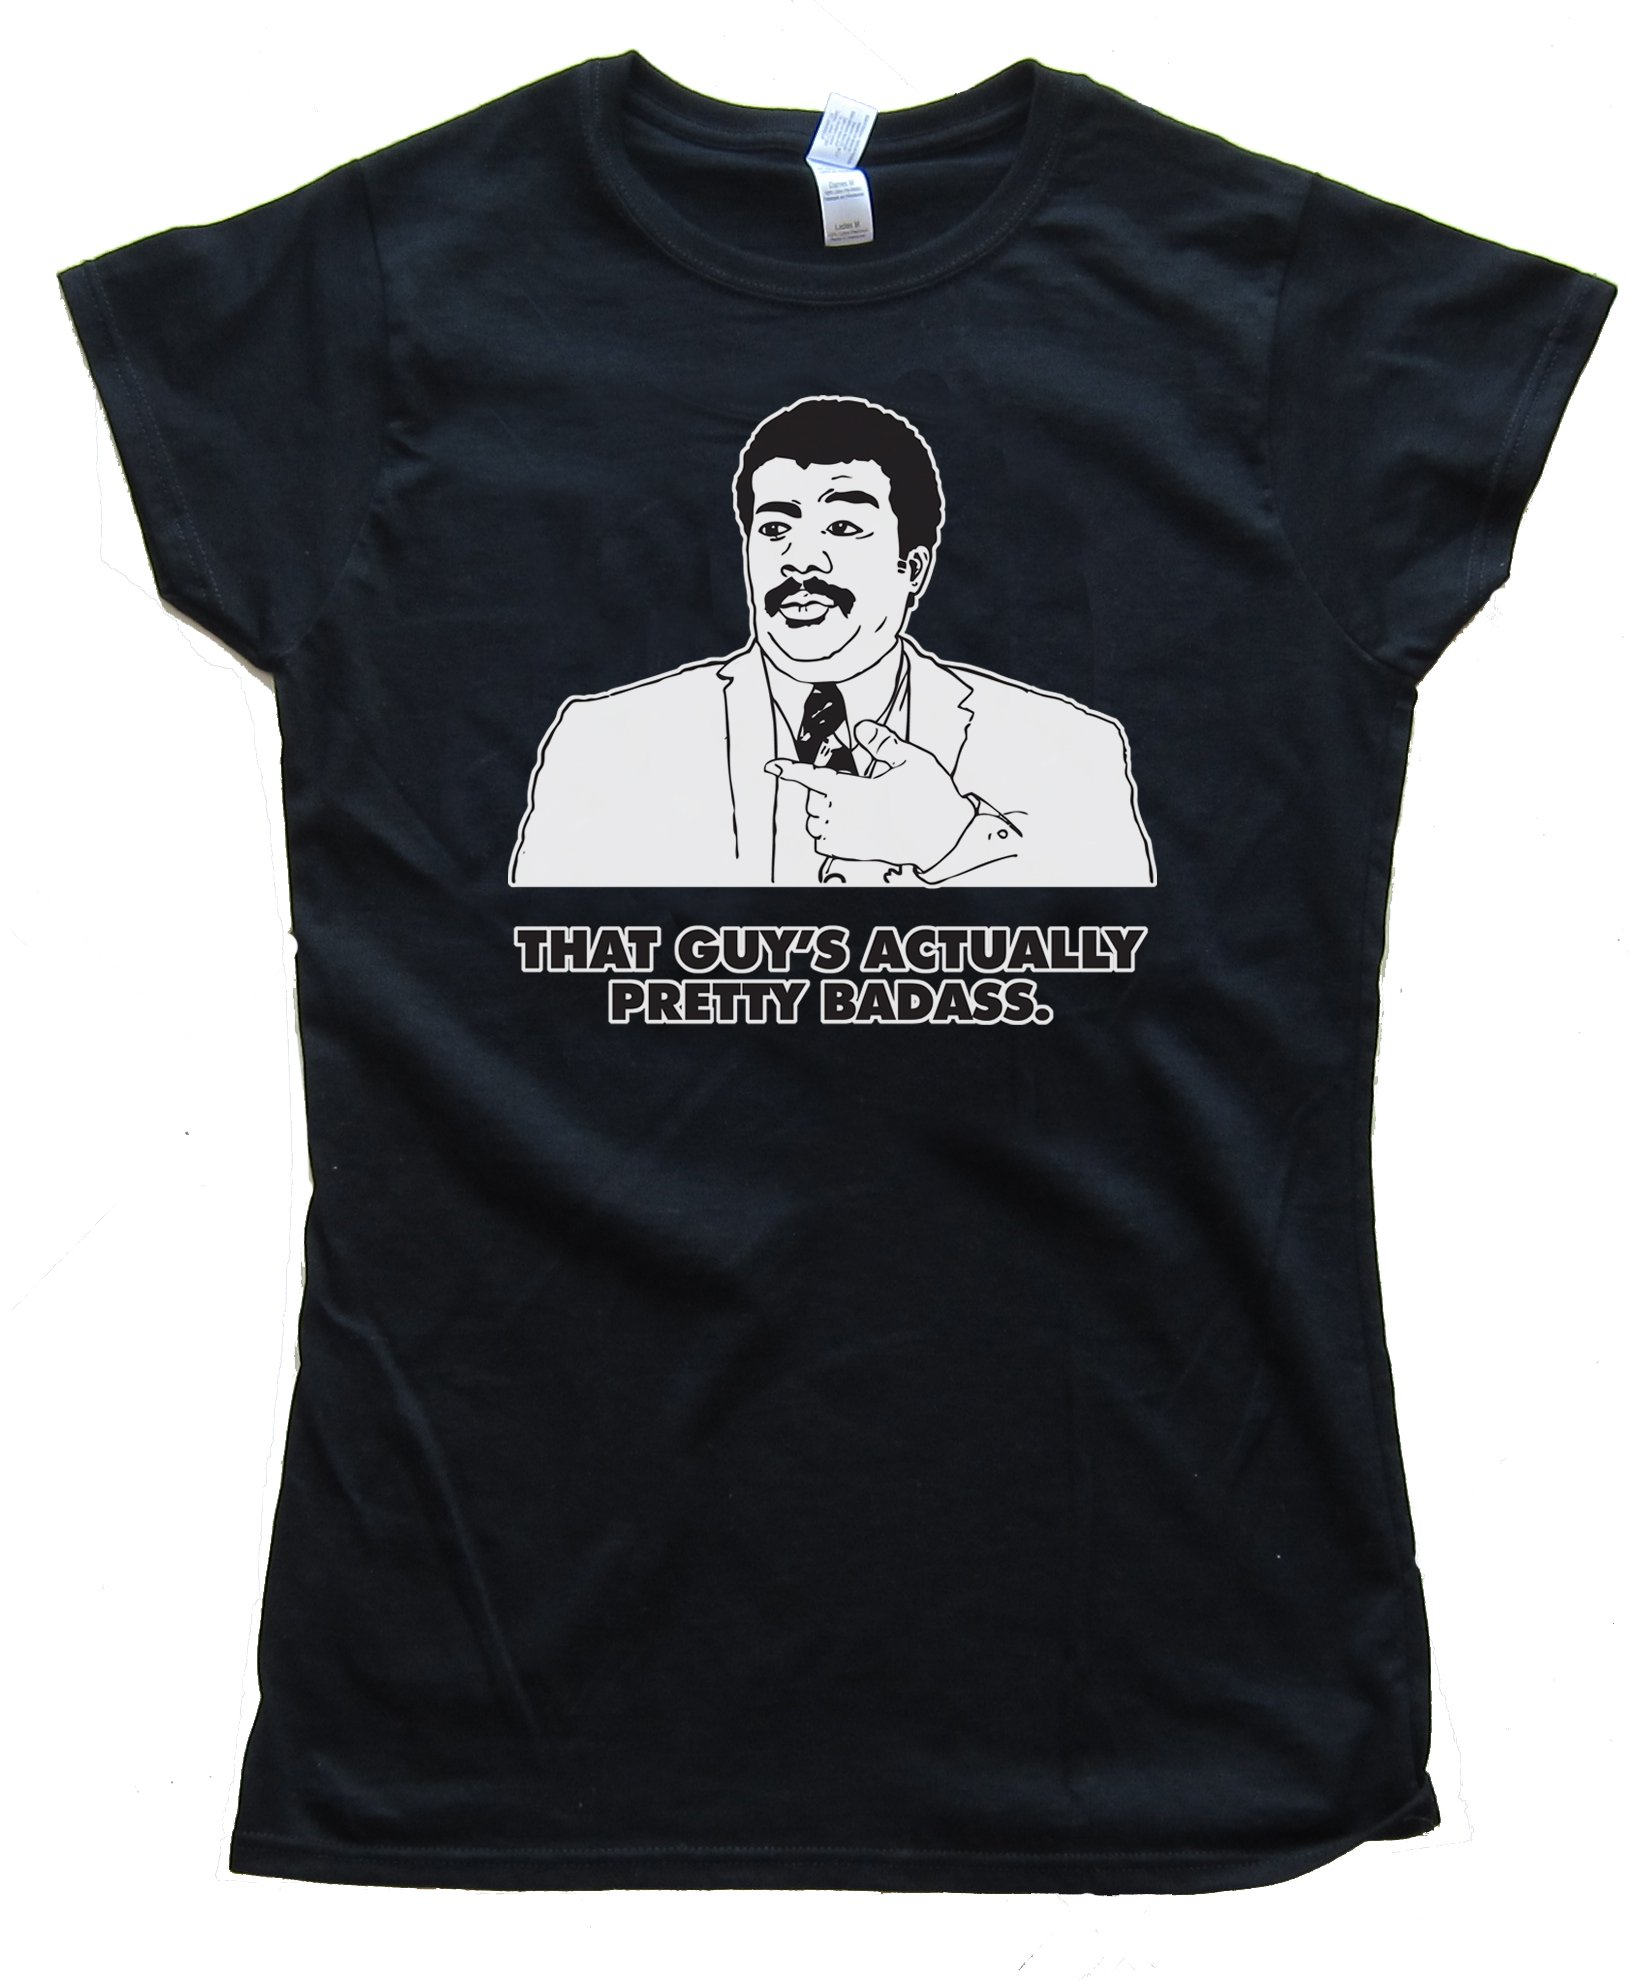 Womens Actually That Guy'S Pretty Badass. Neil Degrasse Tyson Tee Shirt